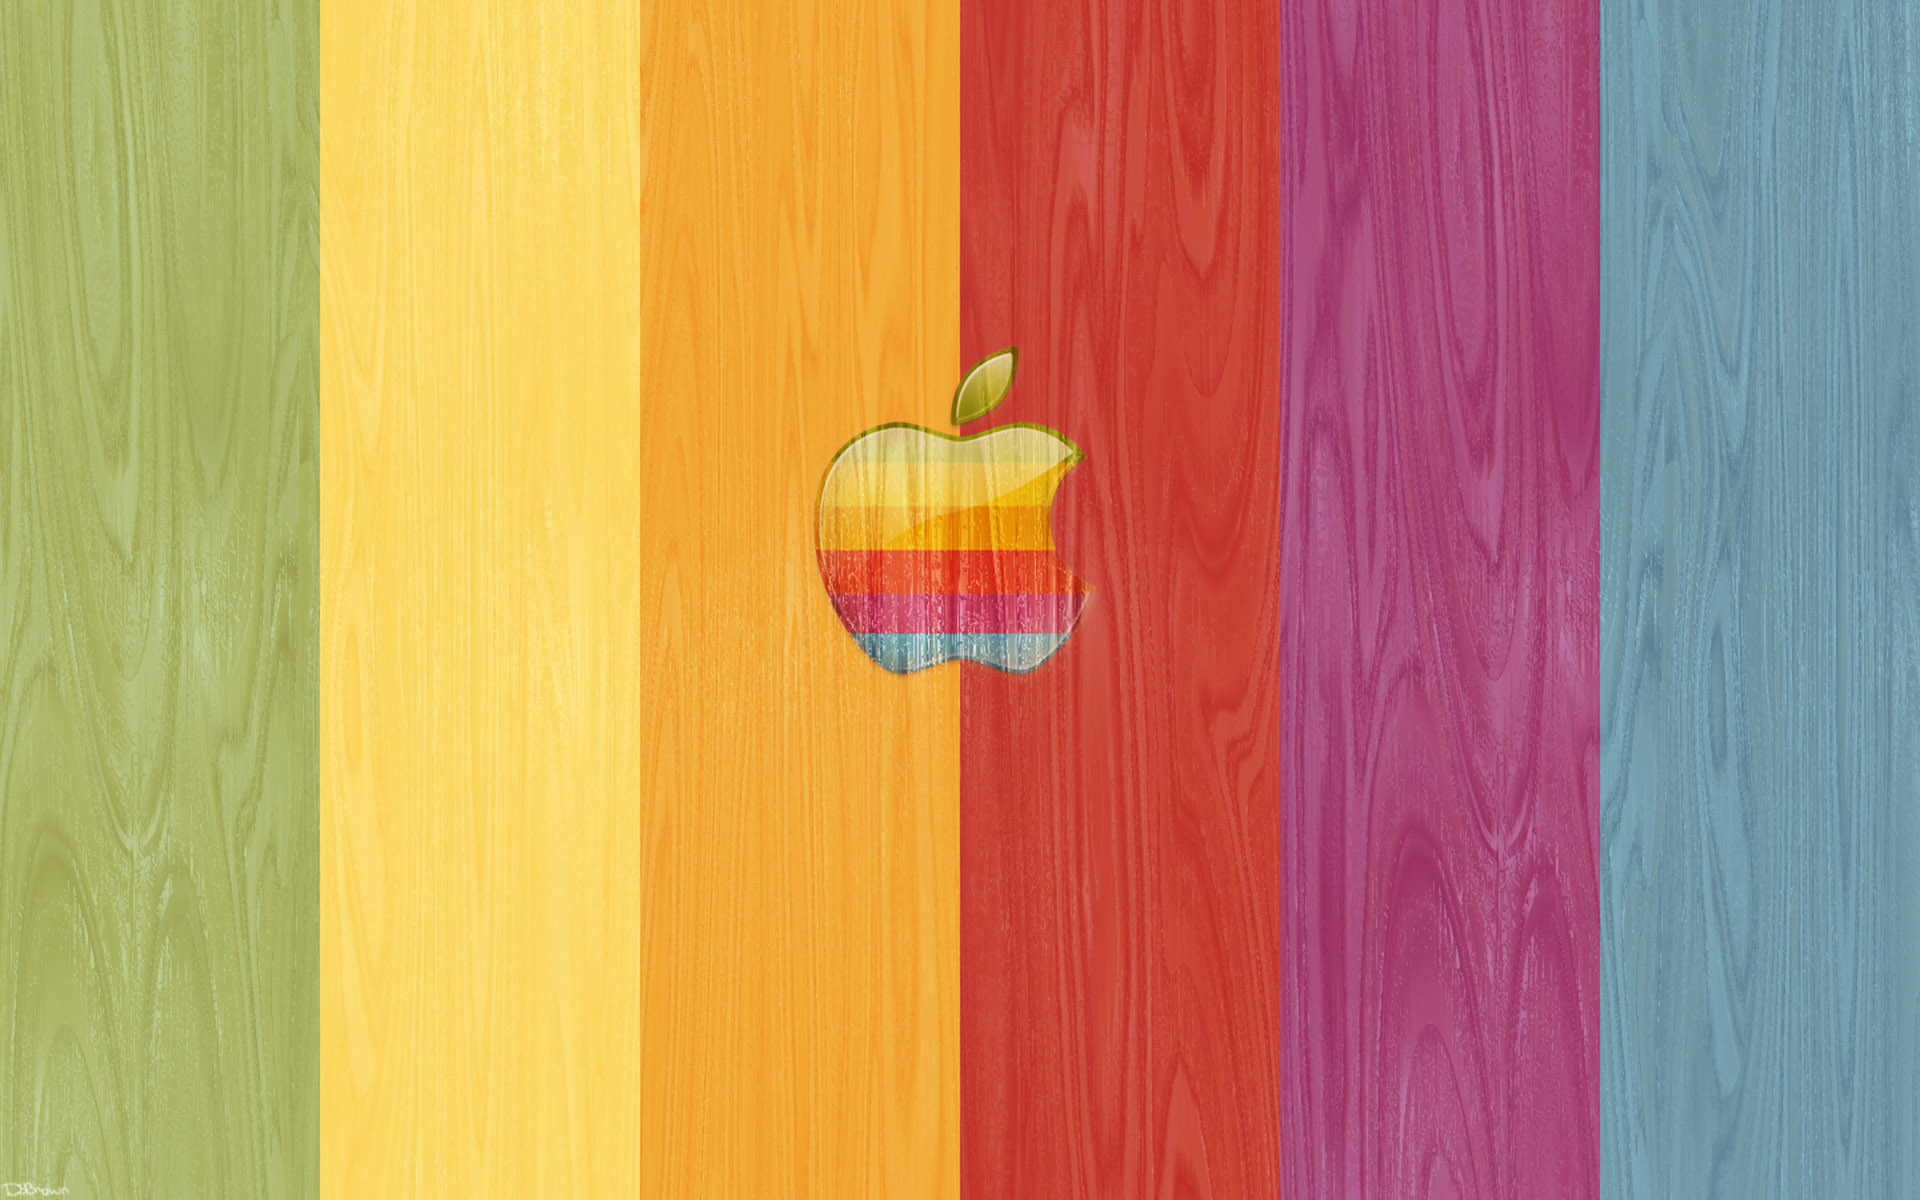 HD Apple wallpaper 17831